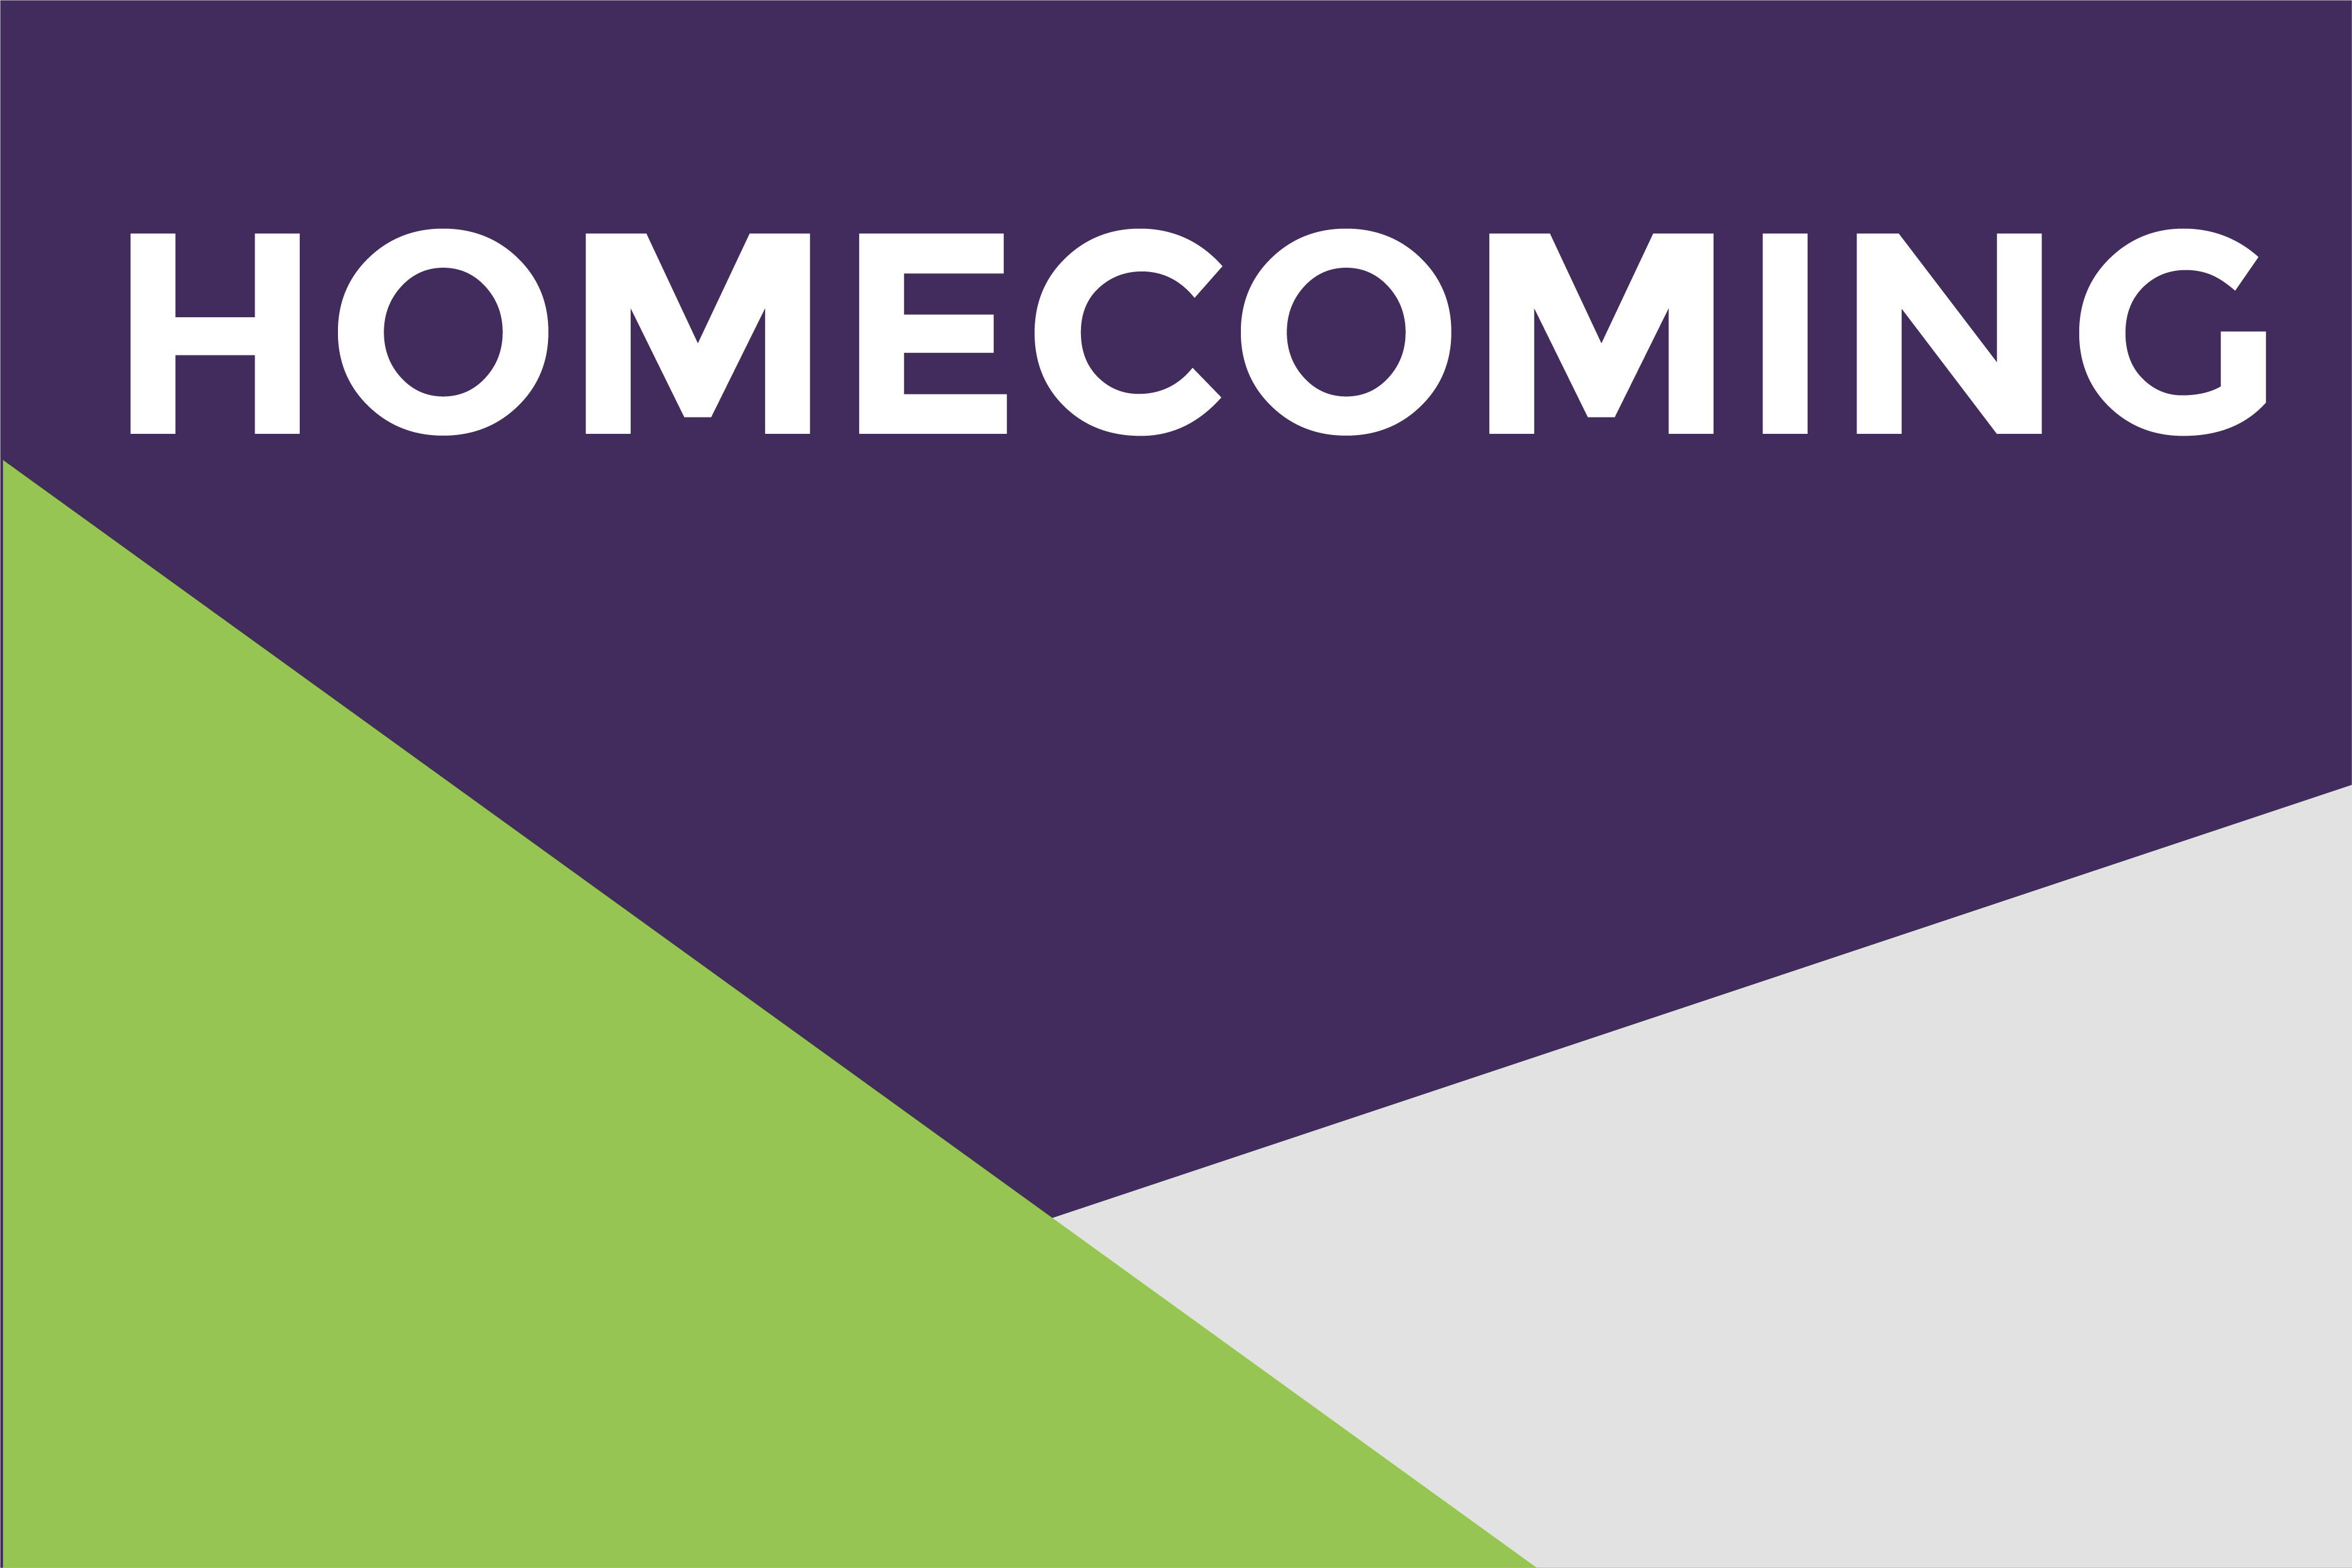 Homecoming at UW-Whitewater